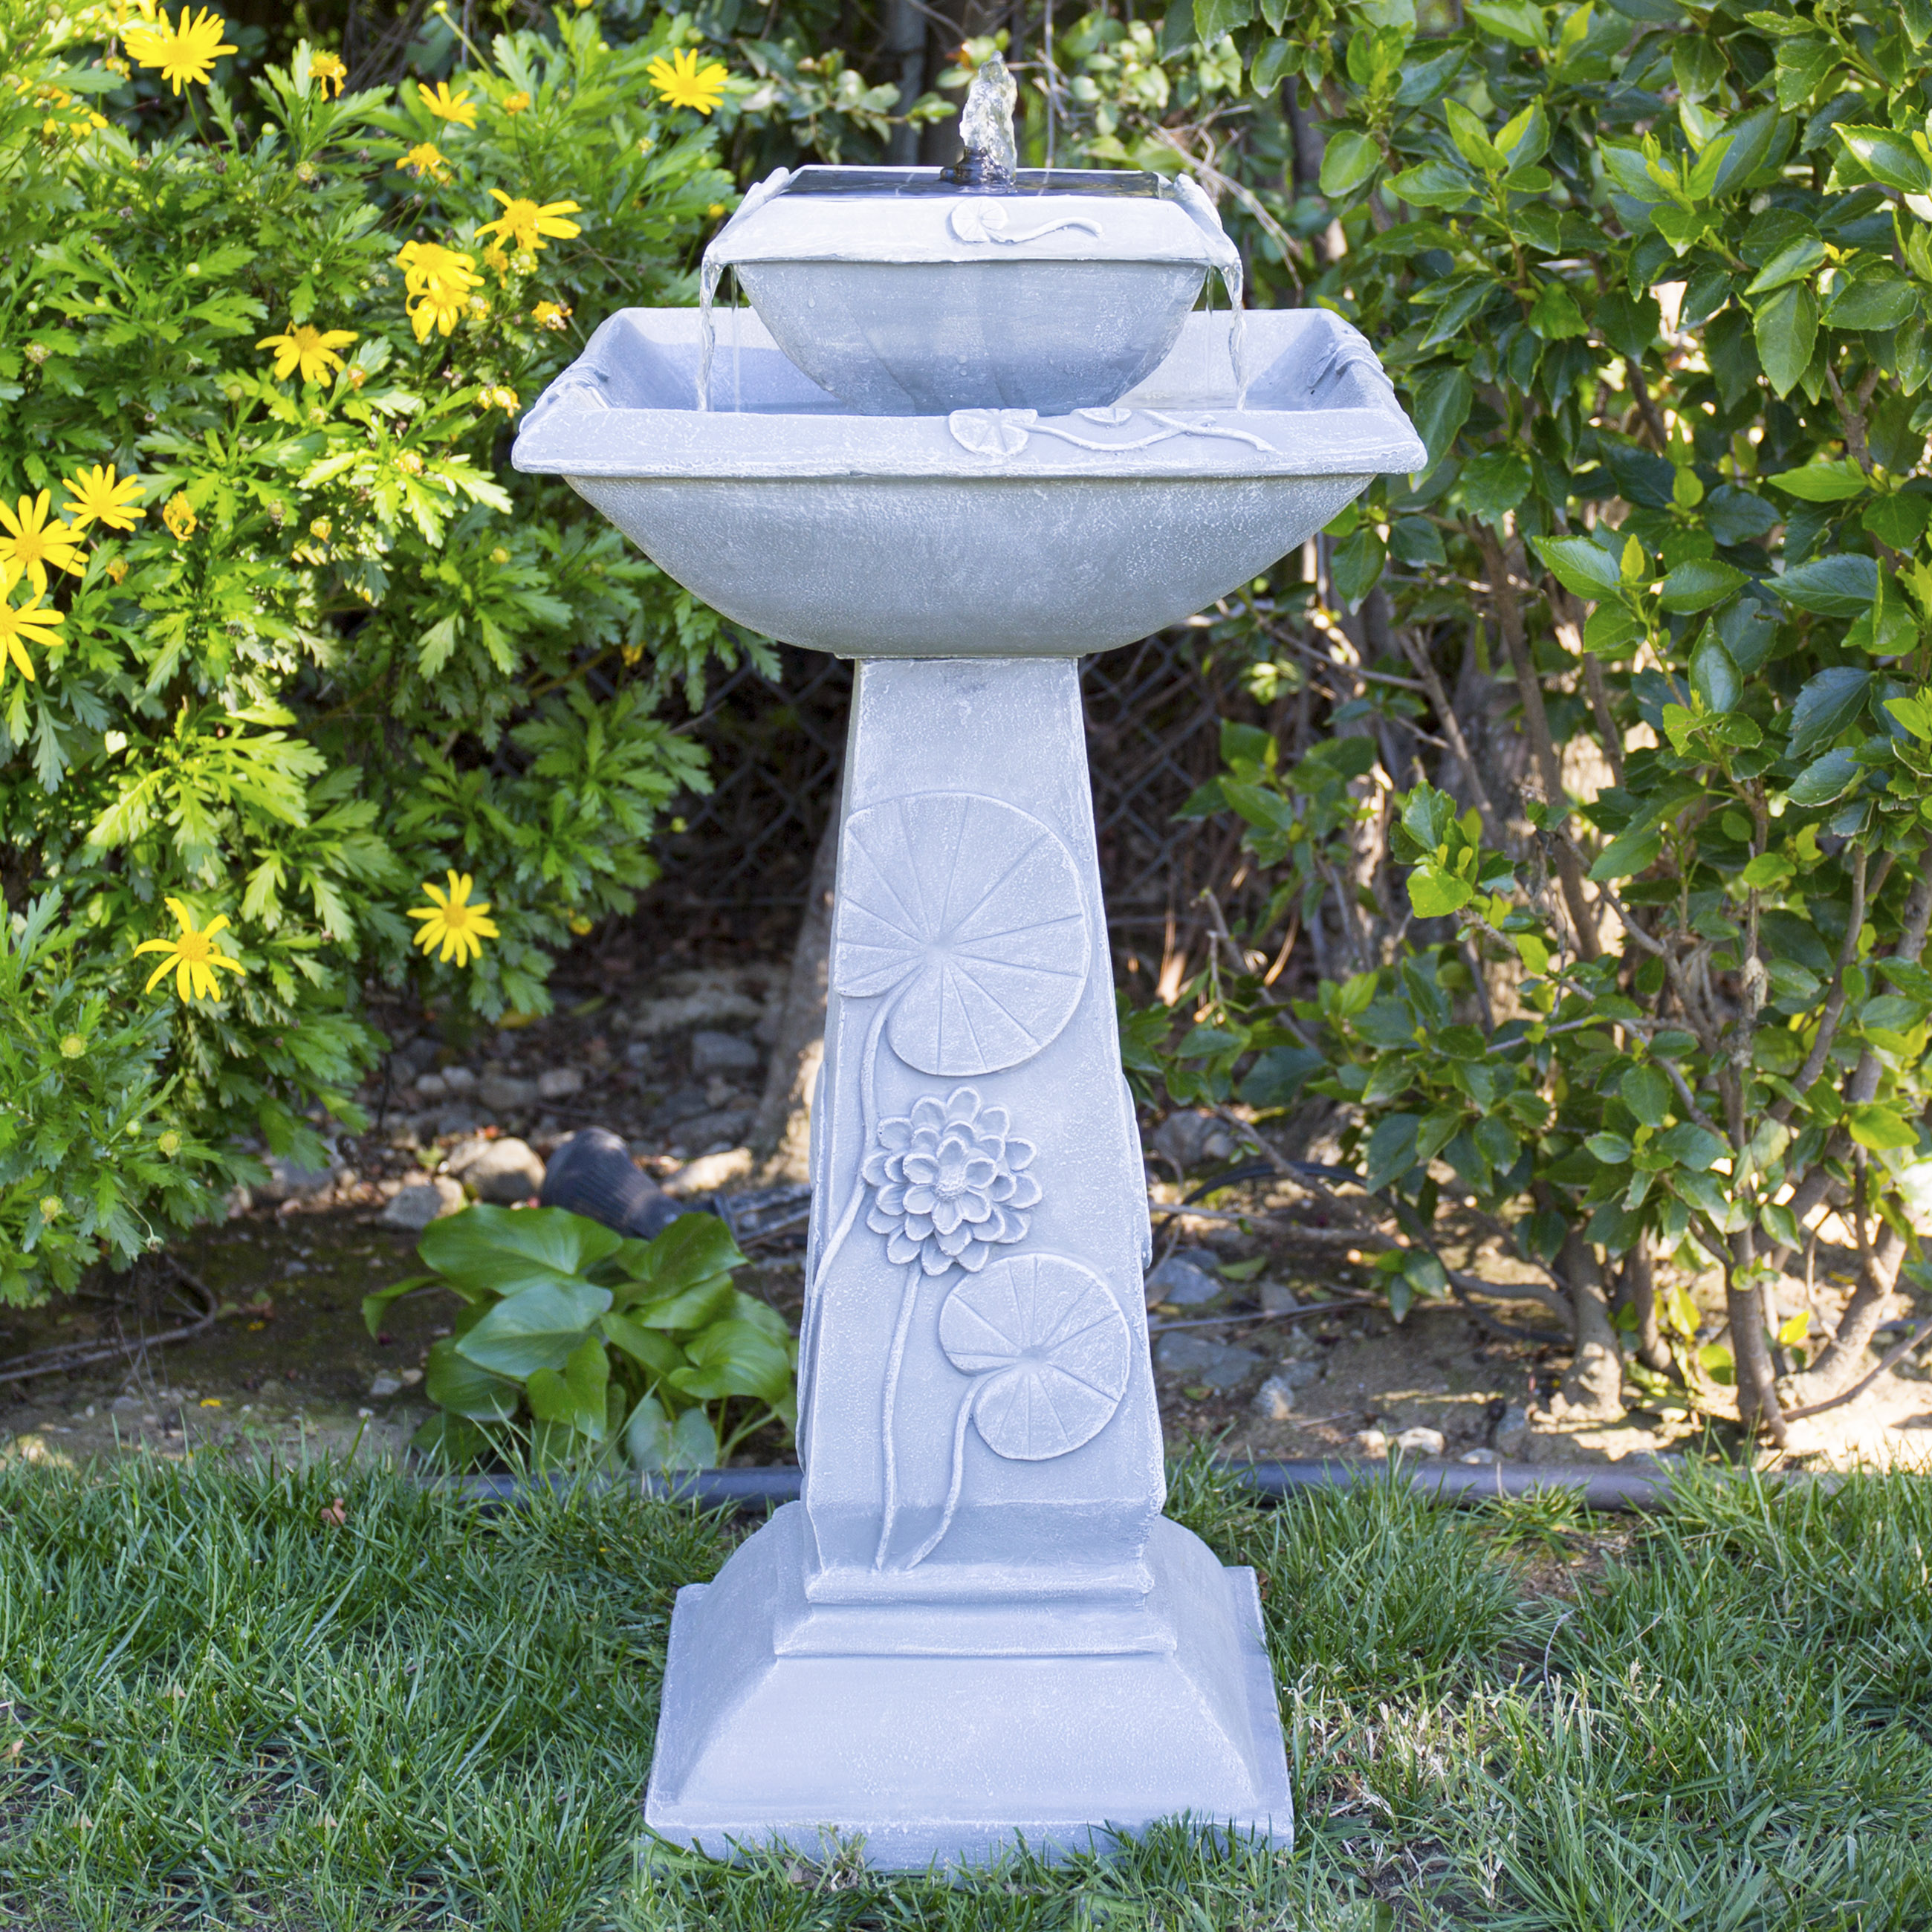 Best Choice Products 2-Tier Solar Birdbath Fountain With LED Lights And Integrated Solar Panel by Best Choice Products